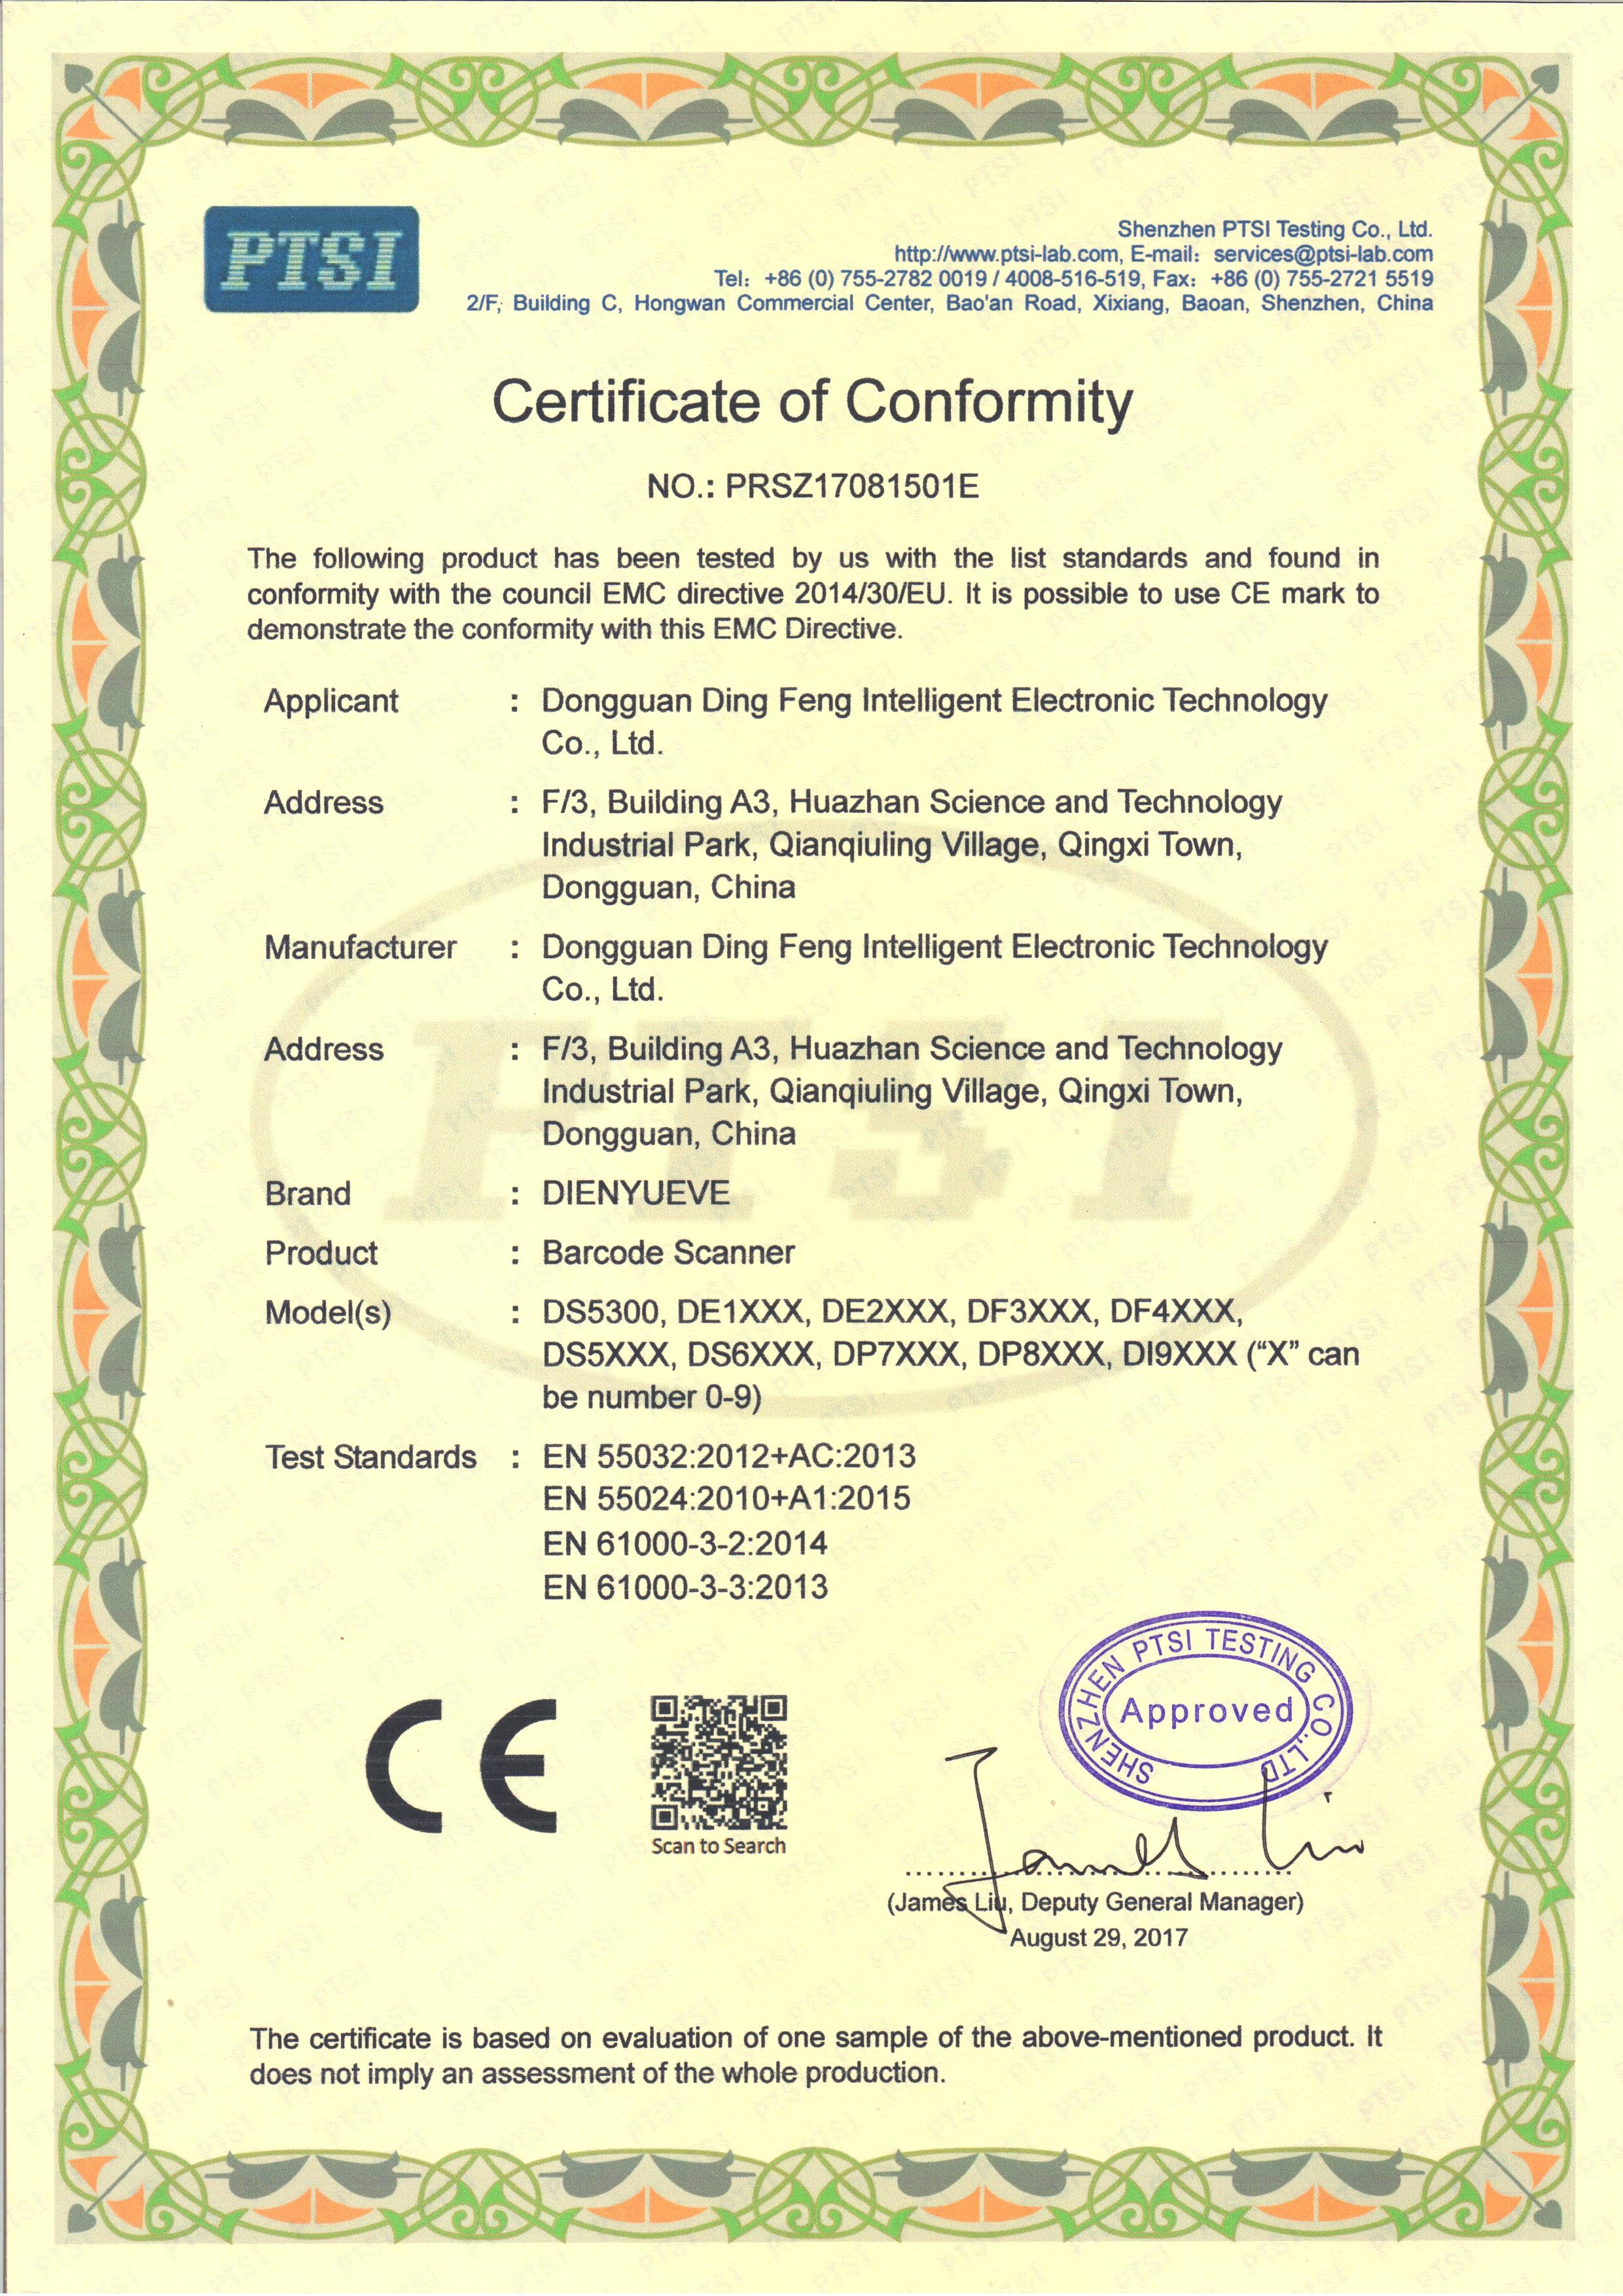 الصين DongGuan DYscan Technology Co., Ltd الشهادات